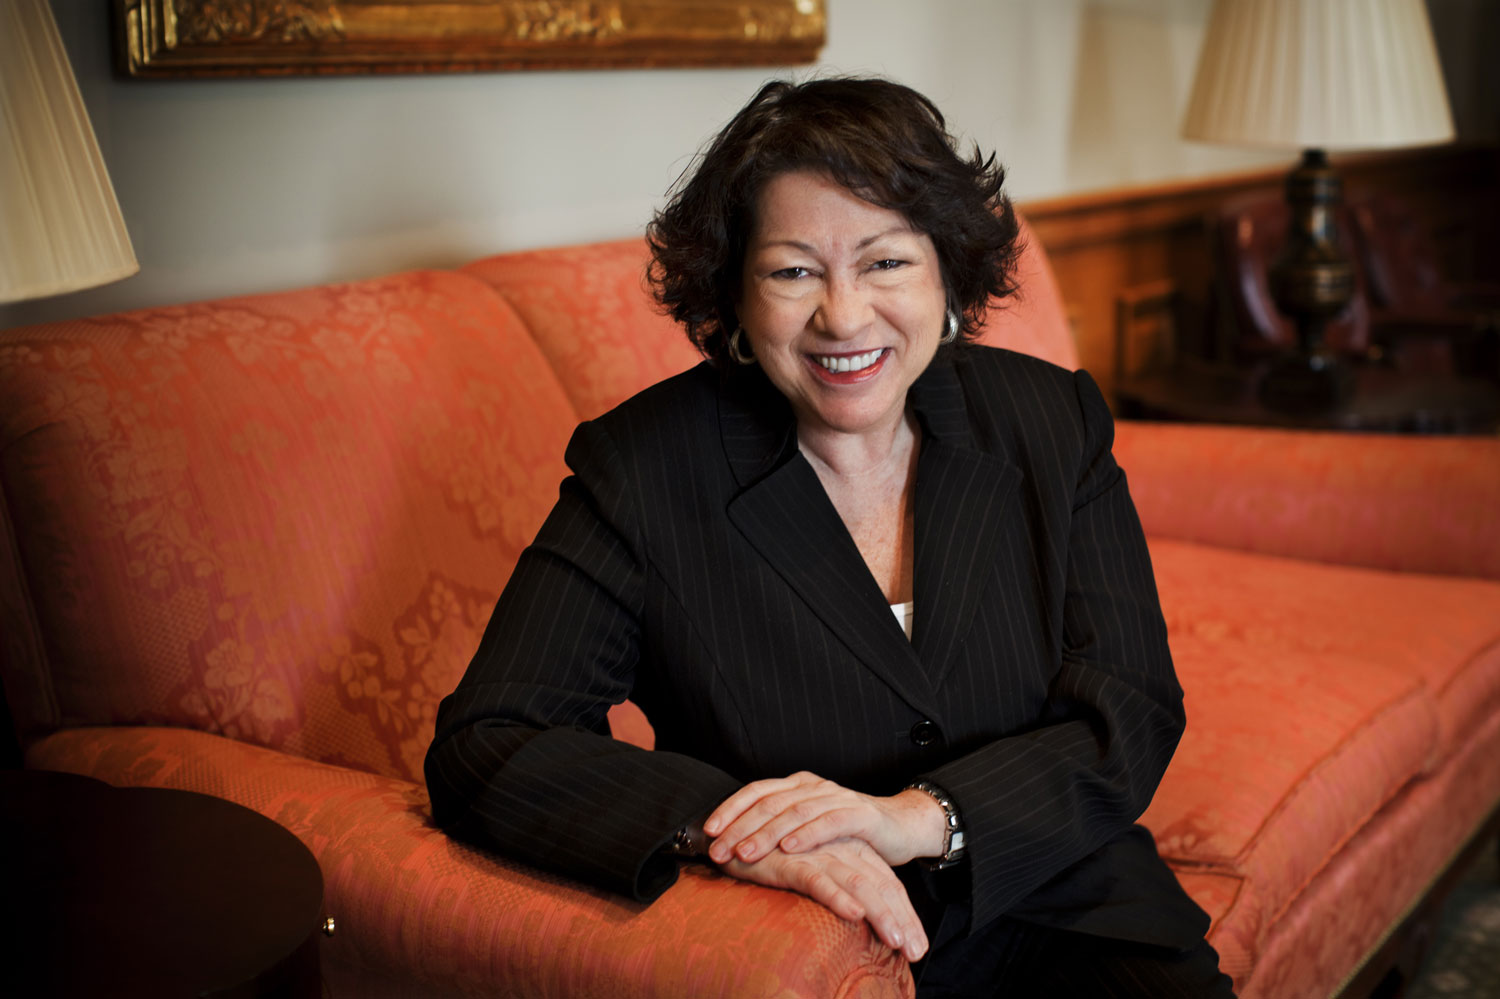 4 Times Sonia Sotomayor Showed the Value of Diverse Voices in the Judicial System